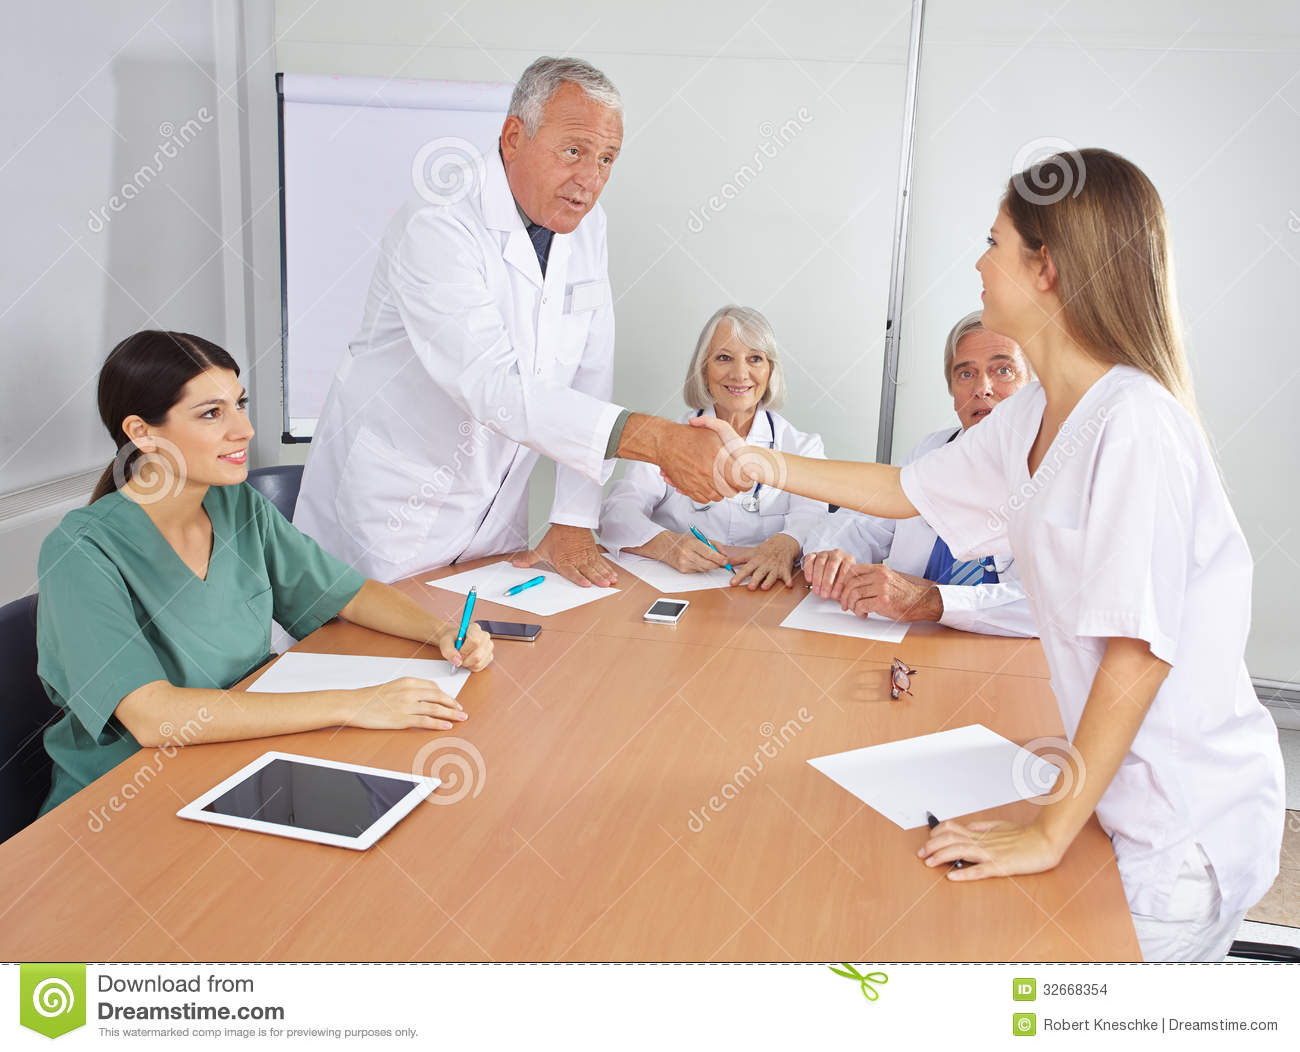 Doctor greeting new colleague in team